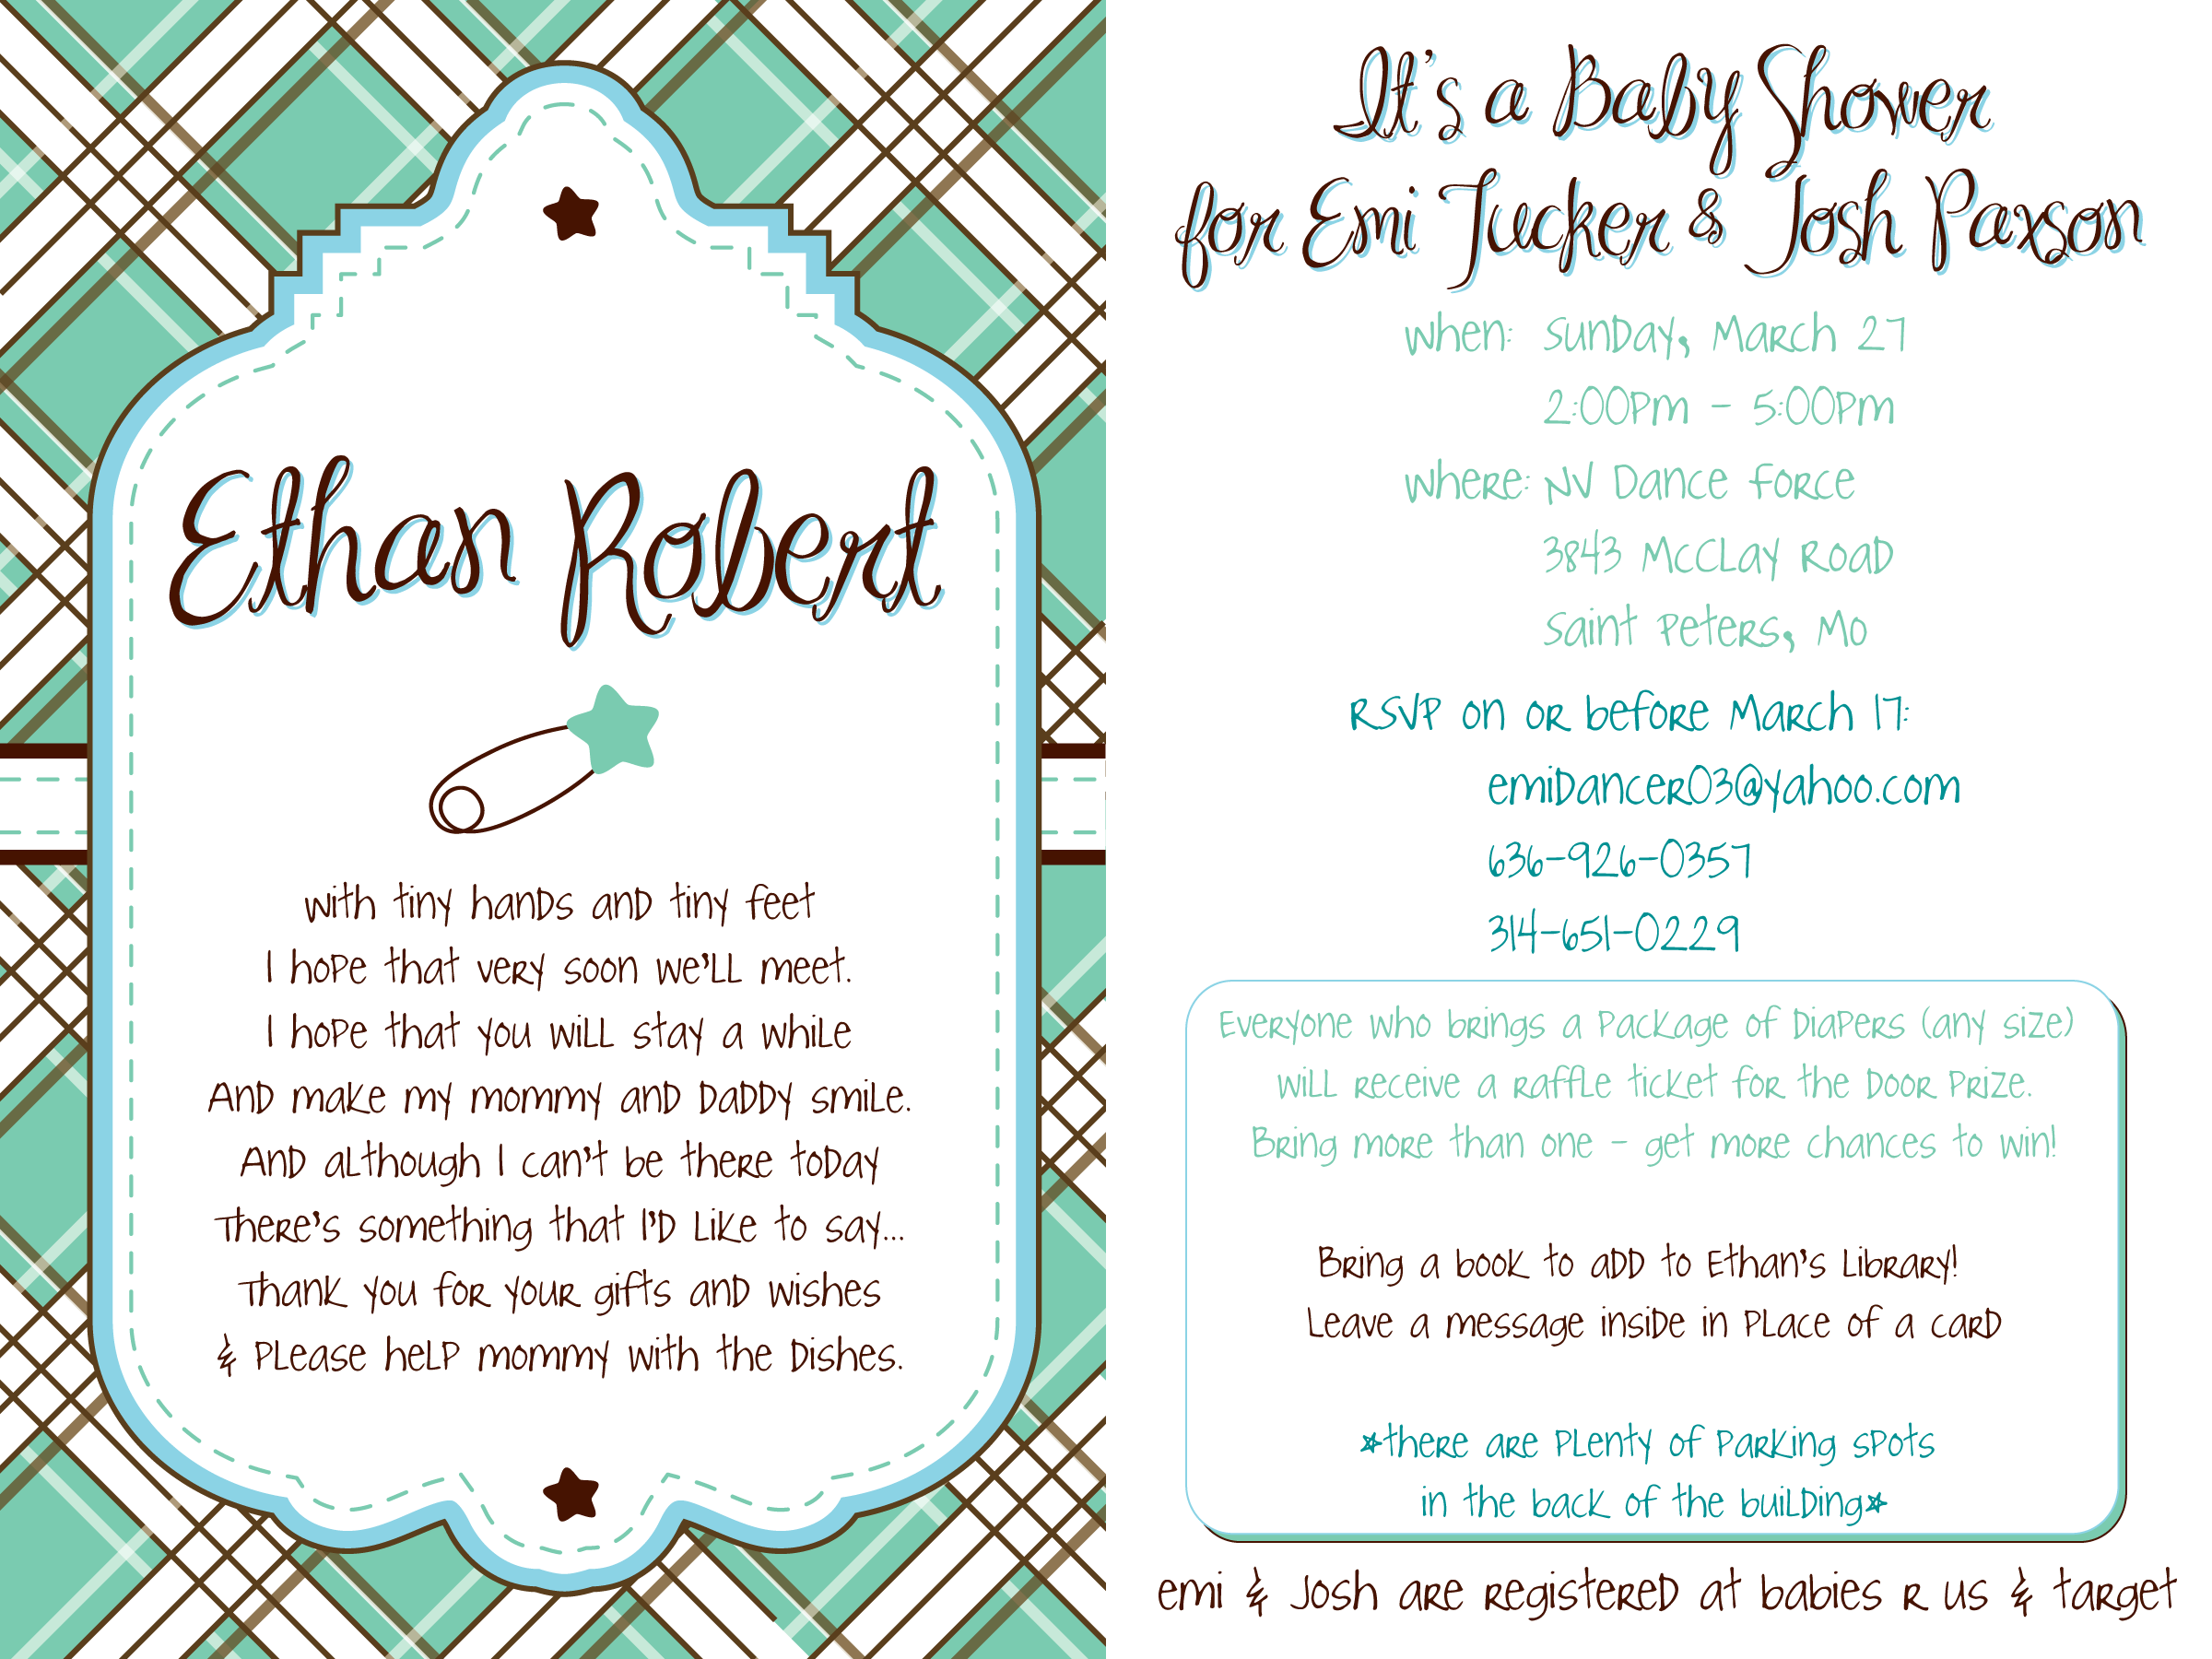 Full Size of Baby Shower:delightful Baby Shower Invitation Wording Picture Designs Baby Shower Invitation Wording Printable Baby Shower Invite Wording For A Boy With Blue Modern Inspirational Hd Photo Wording